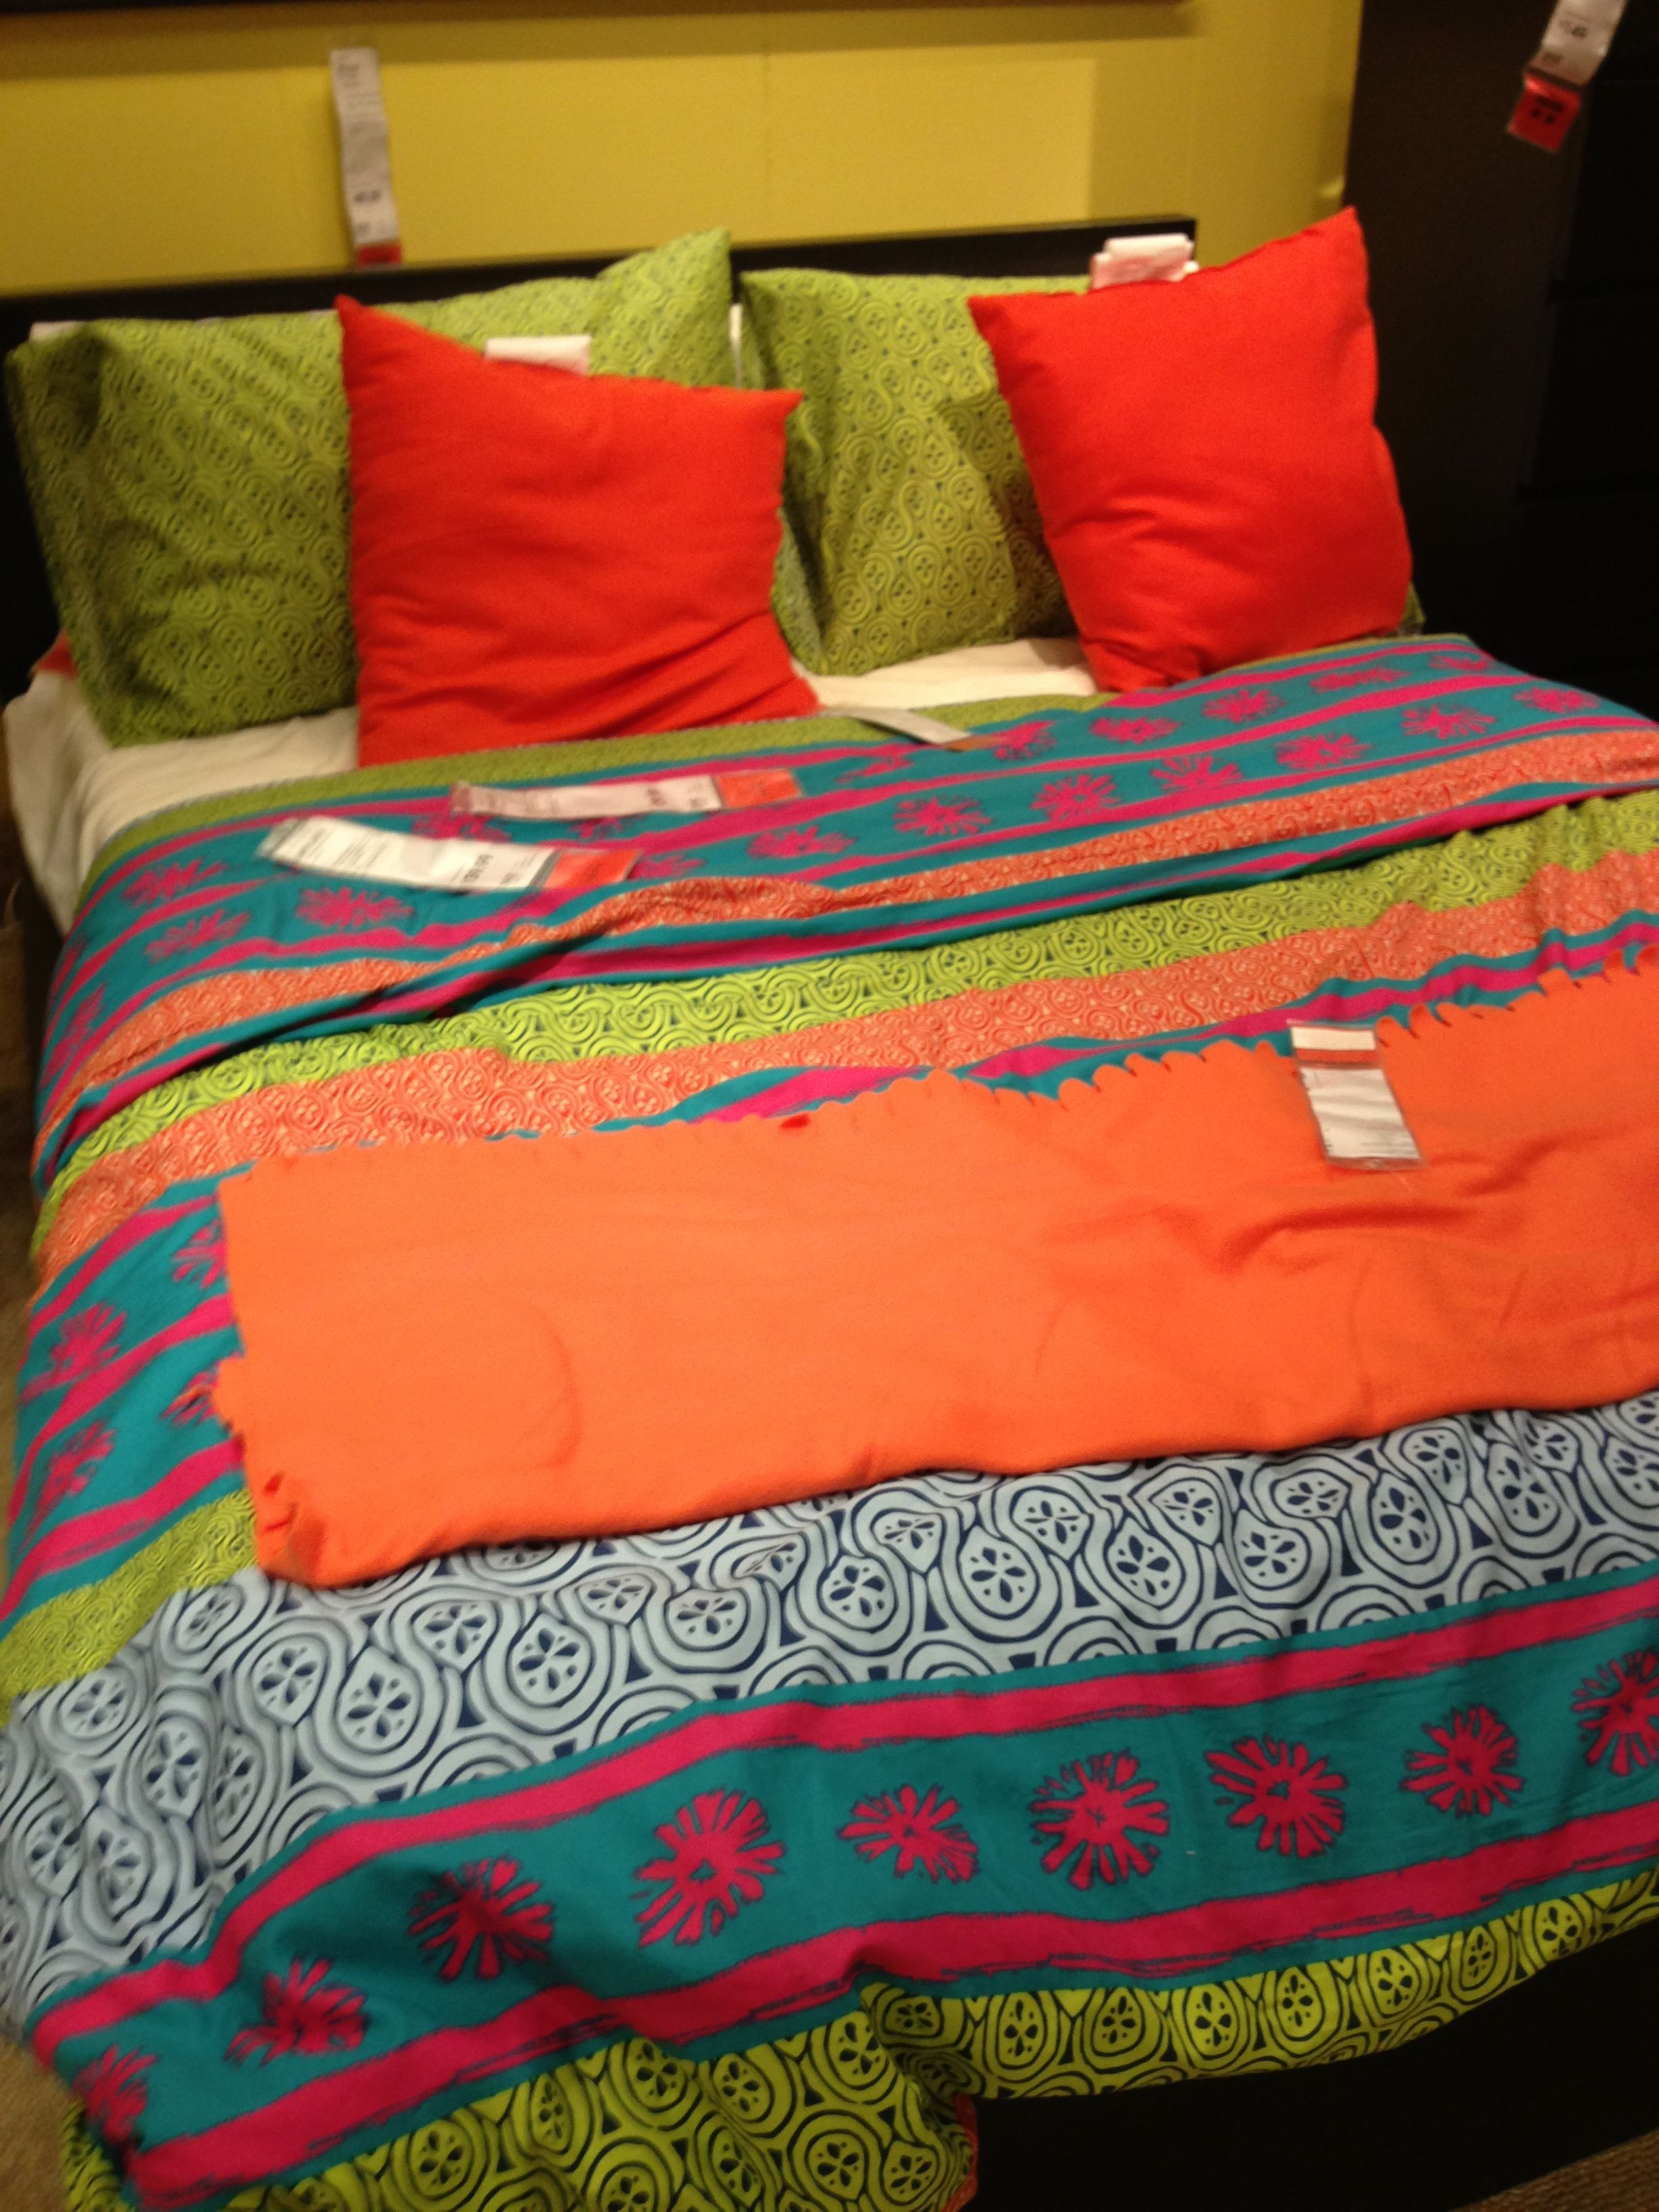 lappljung duvet cover from ikea with orange Cushions and blanket